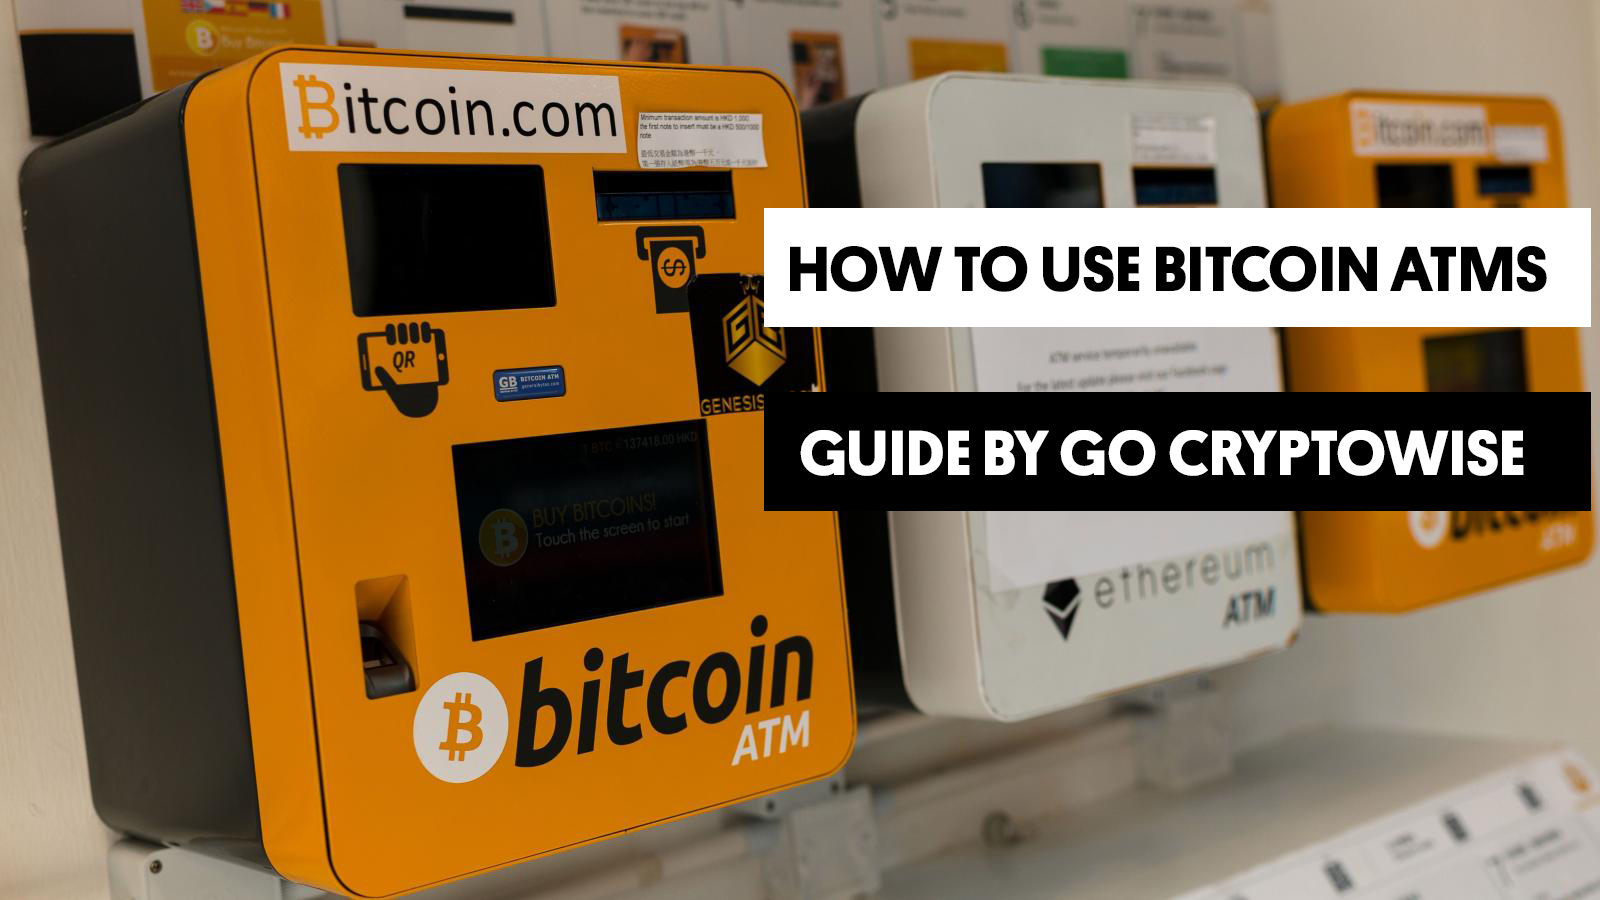 How To Buy Bitcoin From a Bitcoin ATM